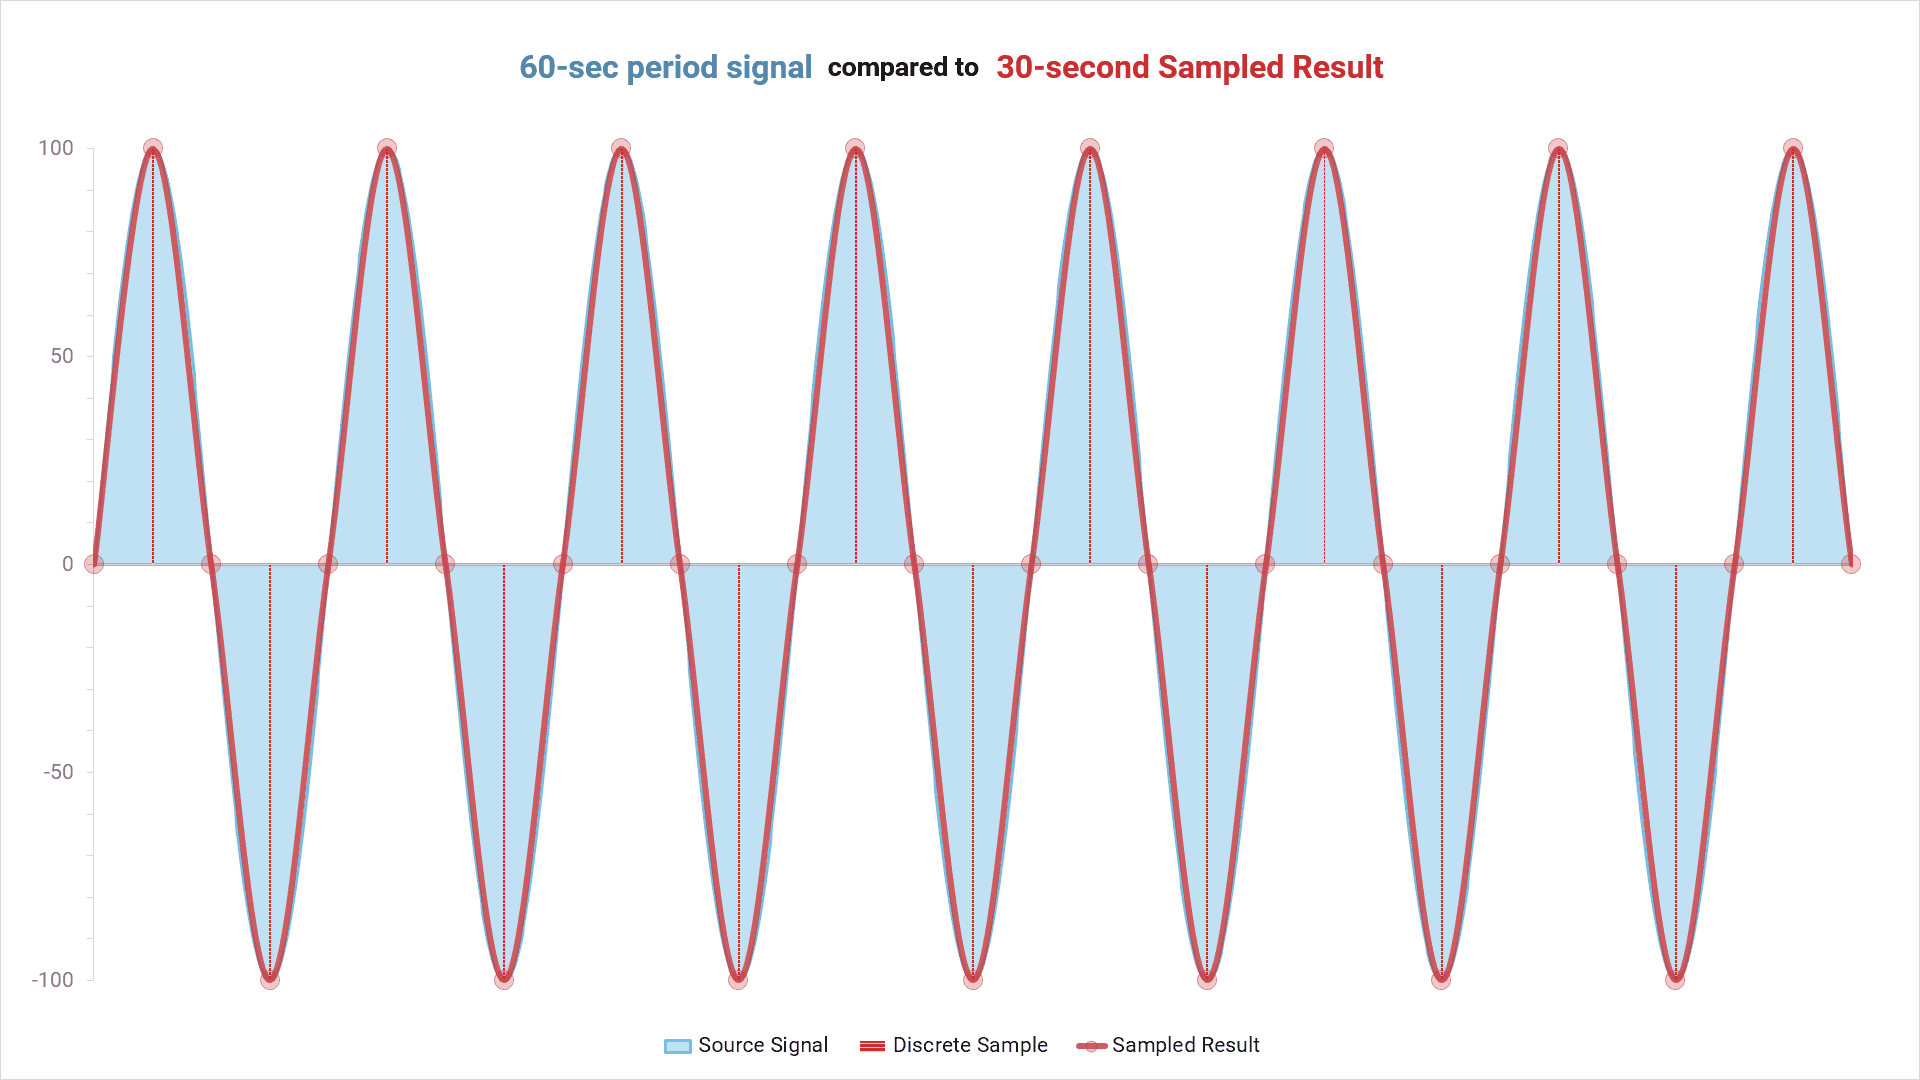 Aliasing: 60-second period signal compared to 30-second sampled result